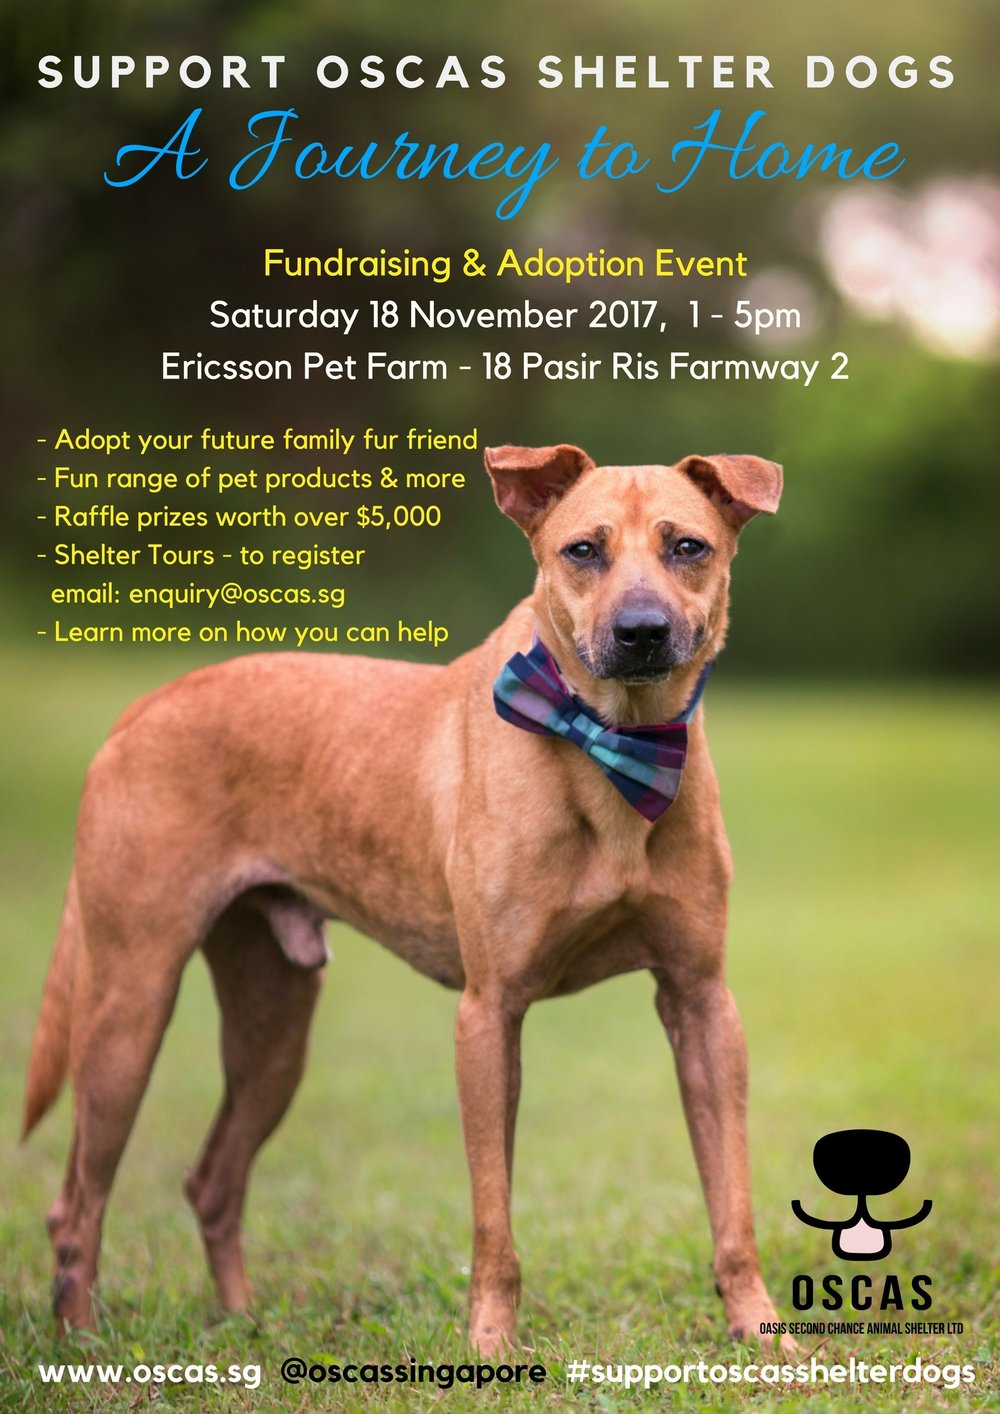 OSCAS Poster - Journey to Home Fundraiser & Adoption event - 18 Nov. 2017.jpg